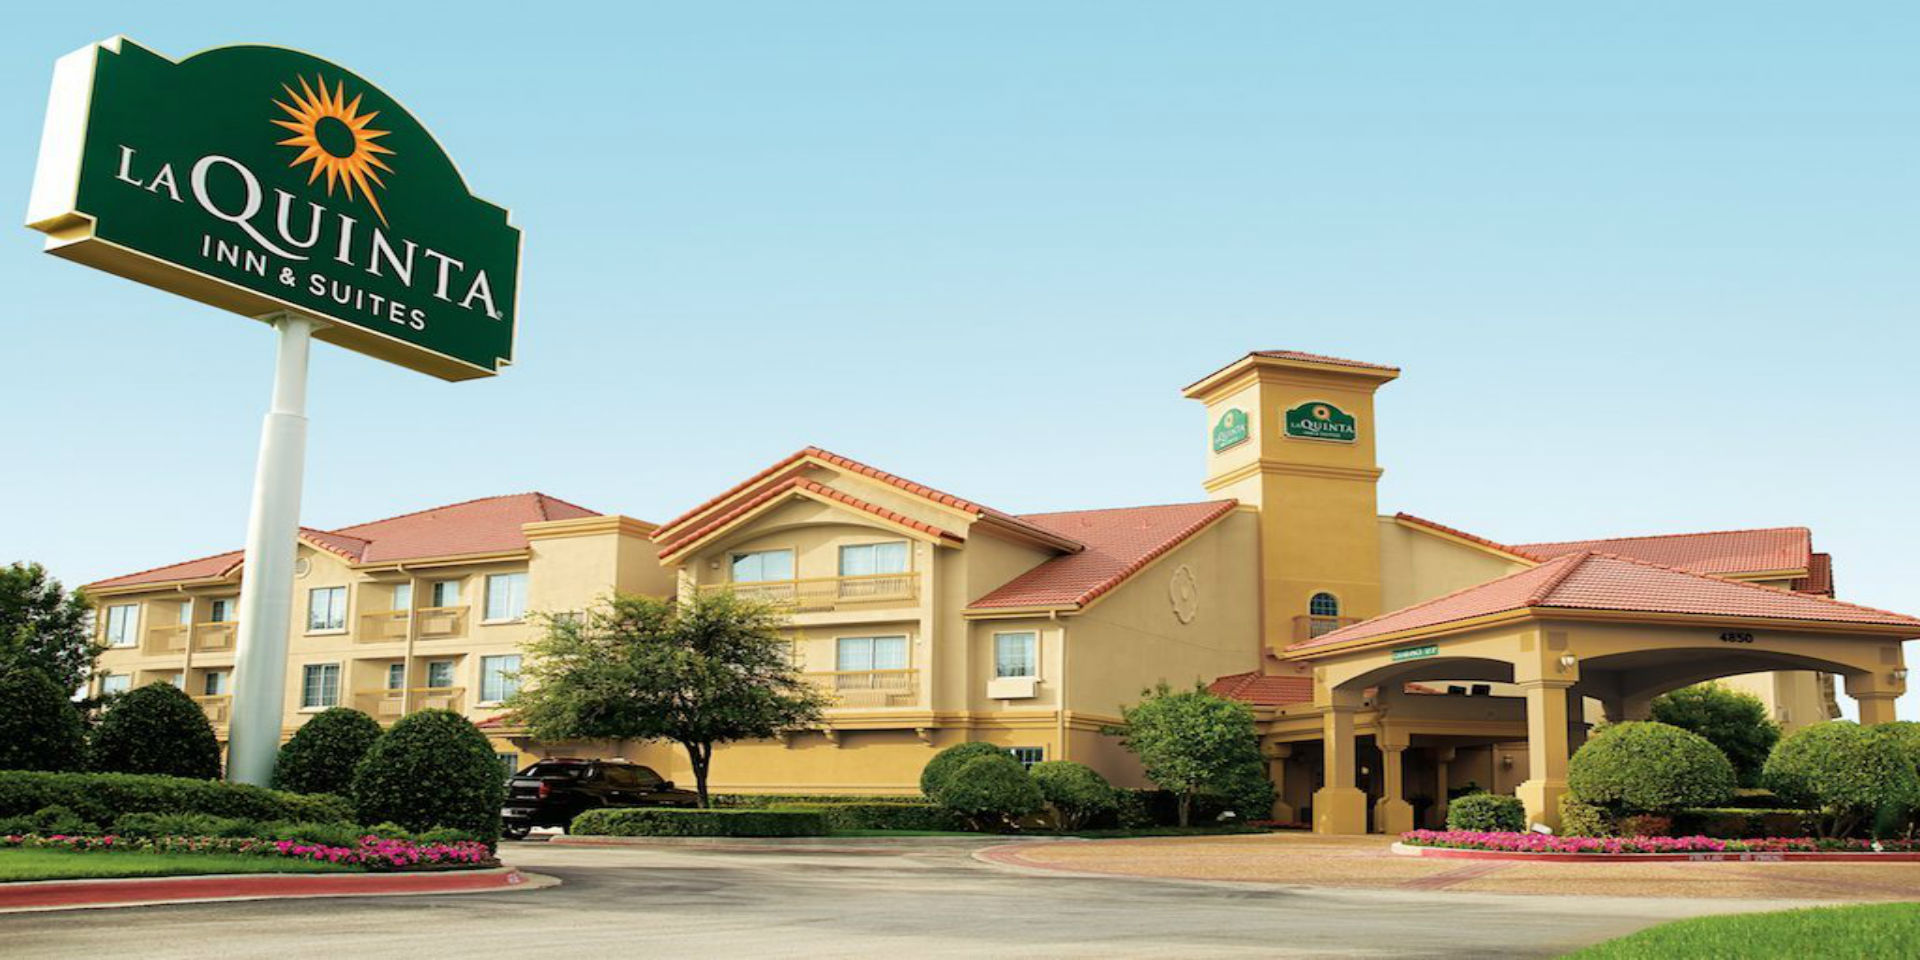 Wyndham's Latest Acquisition is Paying Off, Bringing the Company a Big Revenue Jump